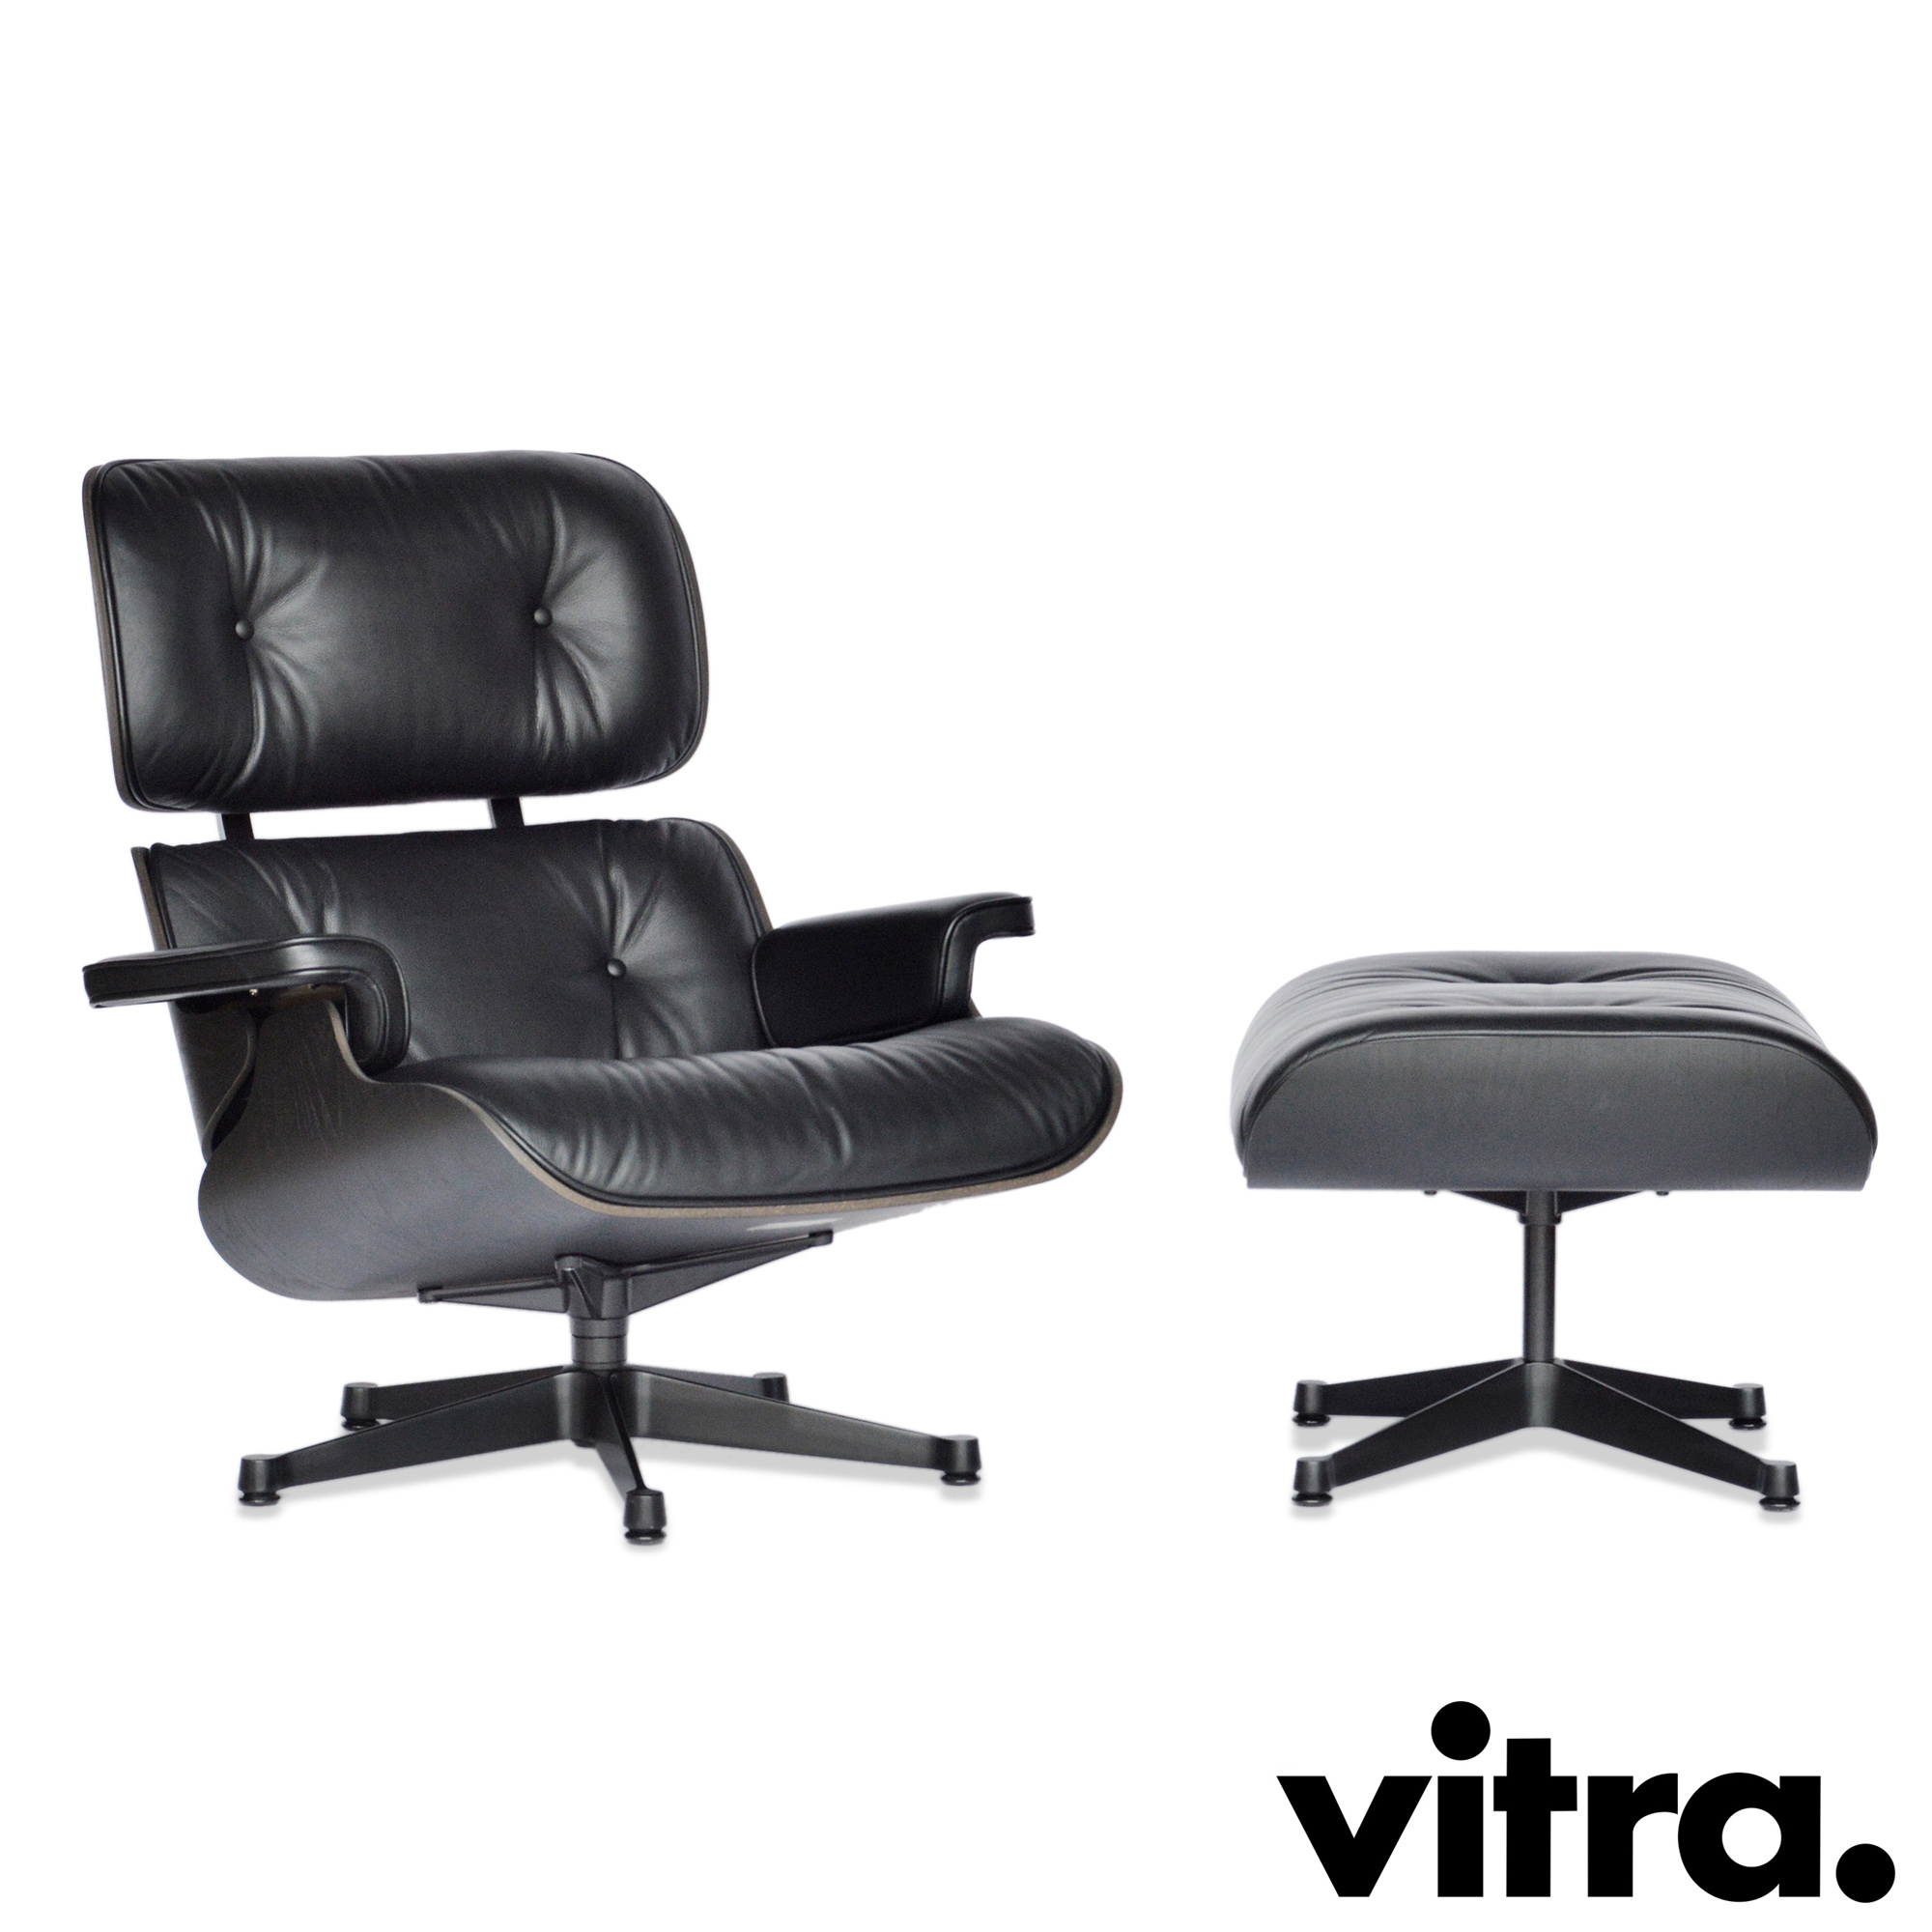 original vitra eames lounge chair ottoman 20 cheaper